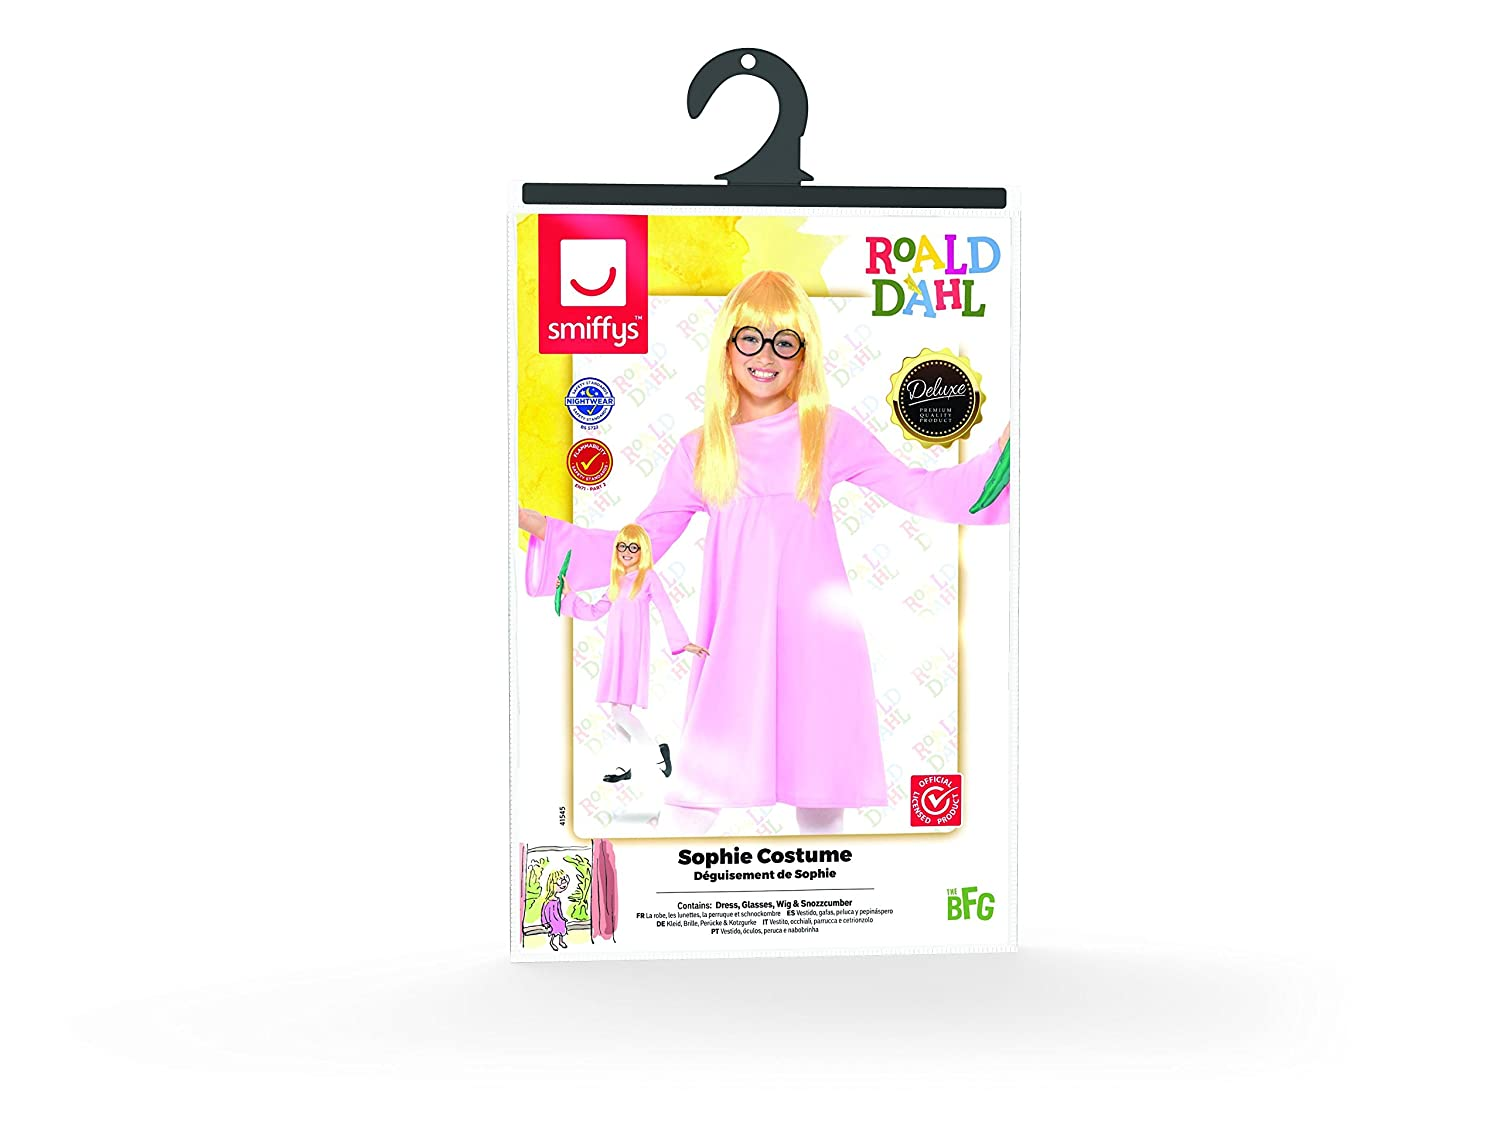 Amazon.com: Smiffys Officially Licensed Roald Dahl Deluxe Sophie Costume: Clothing